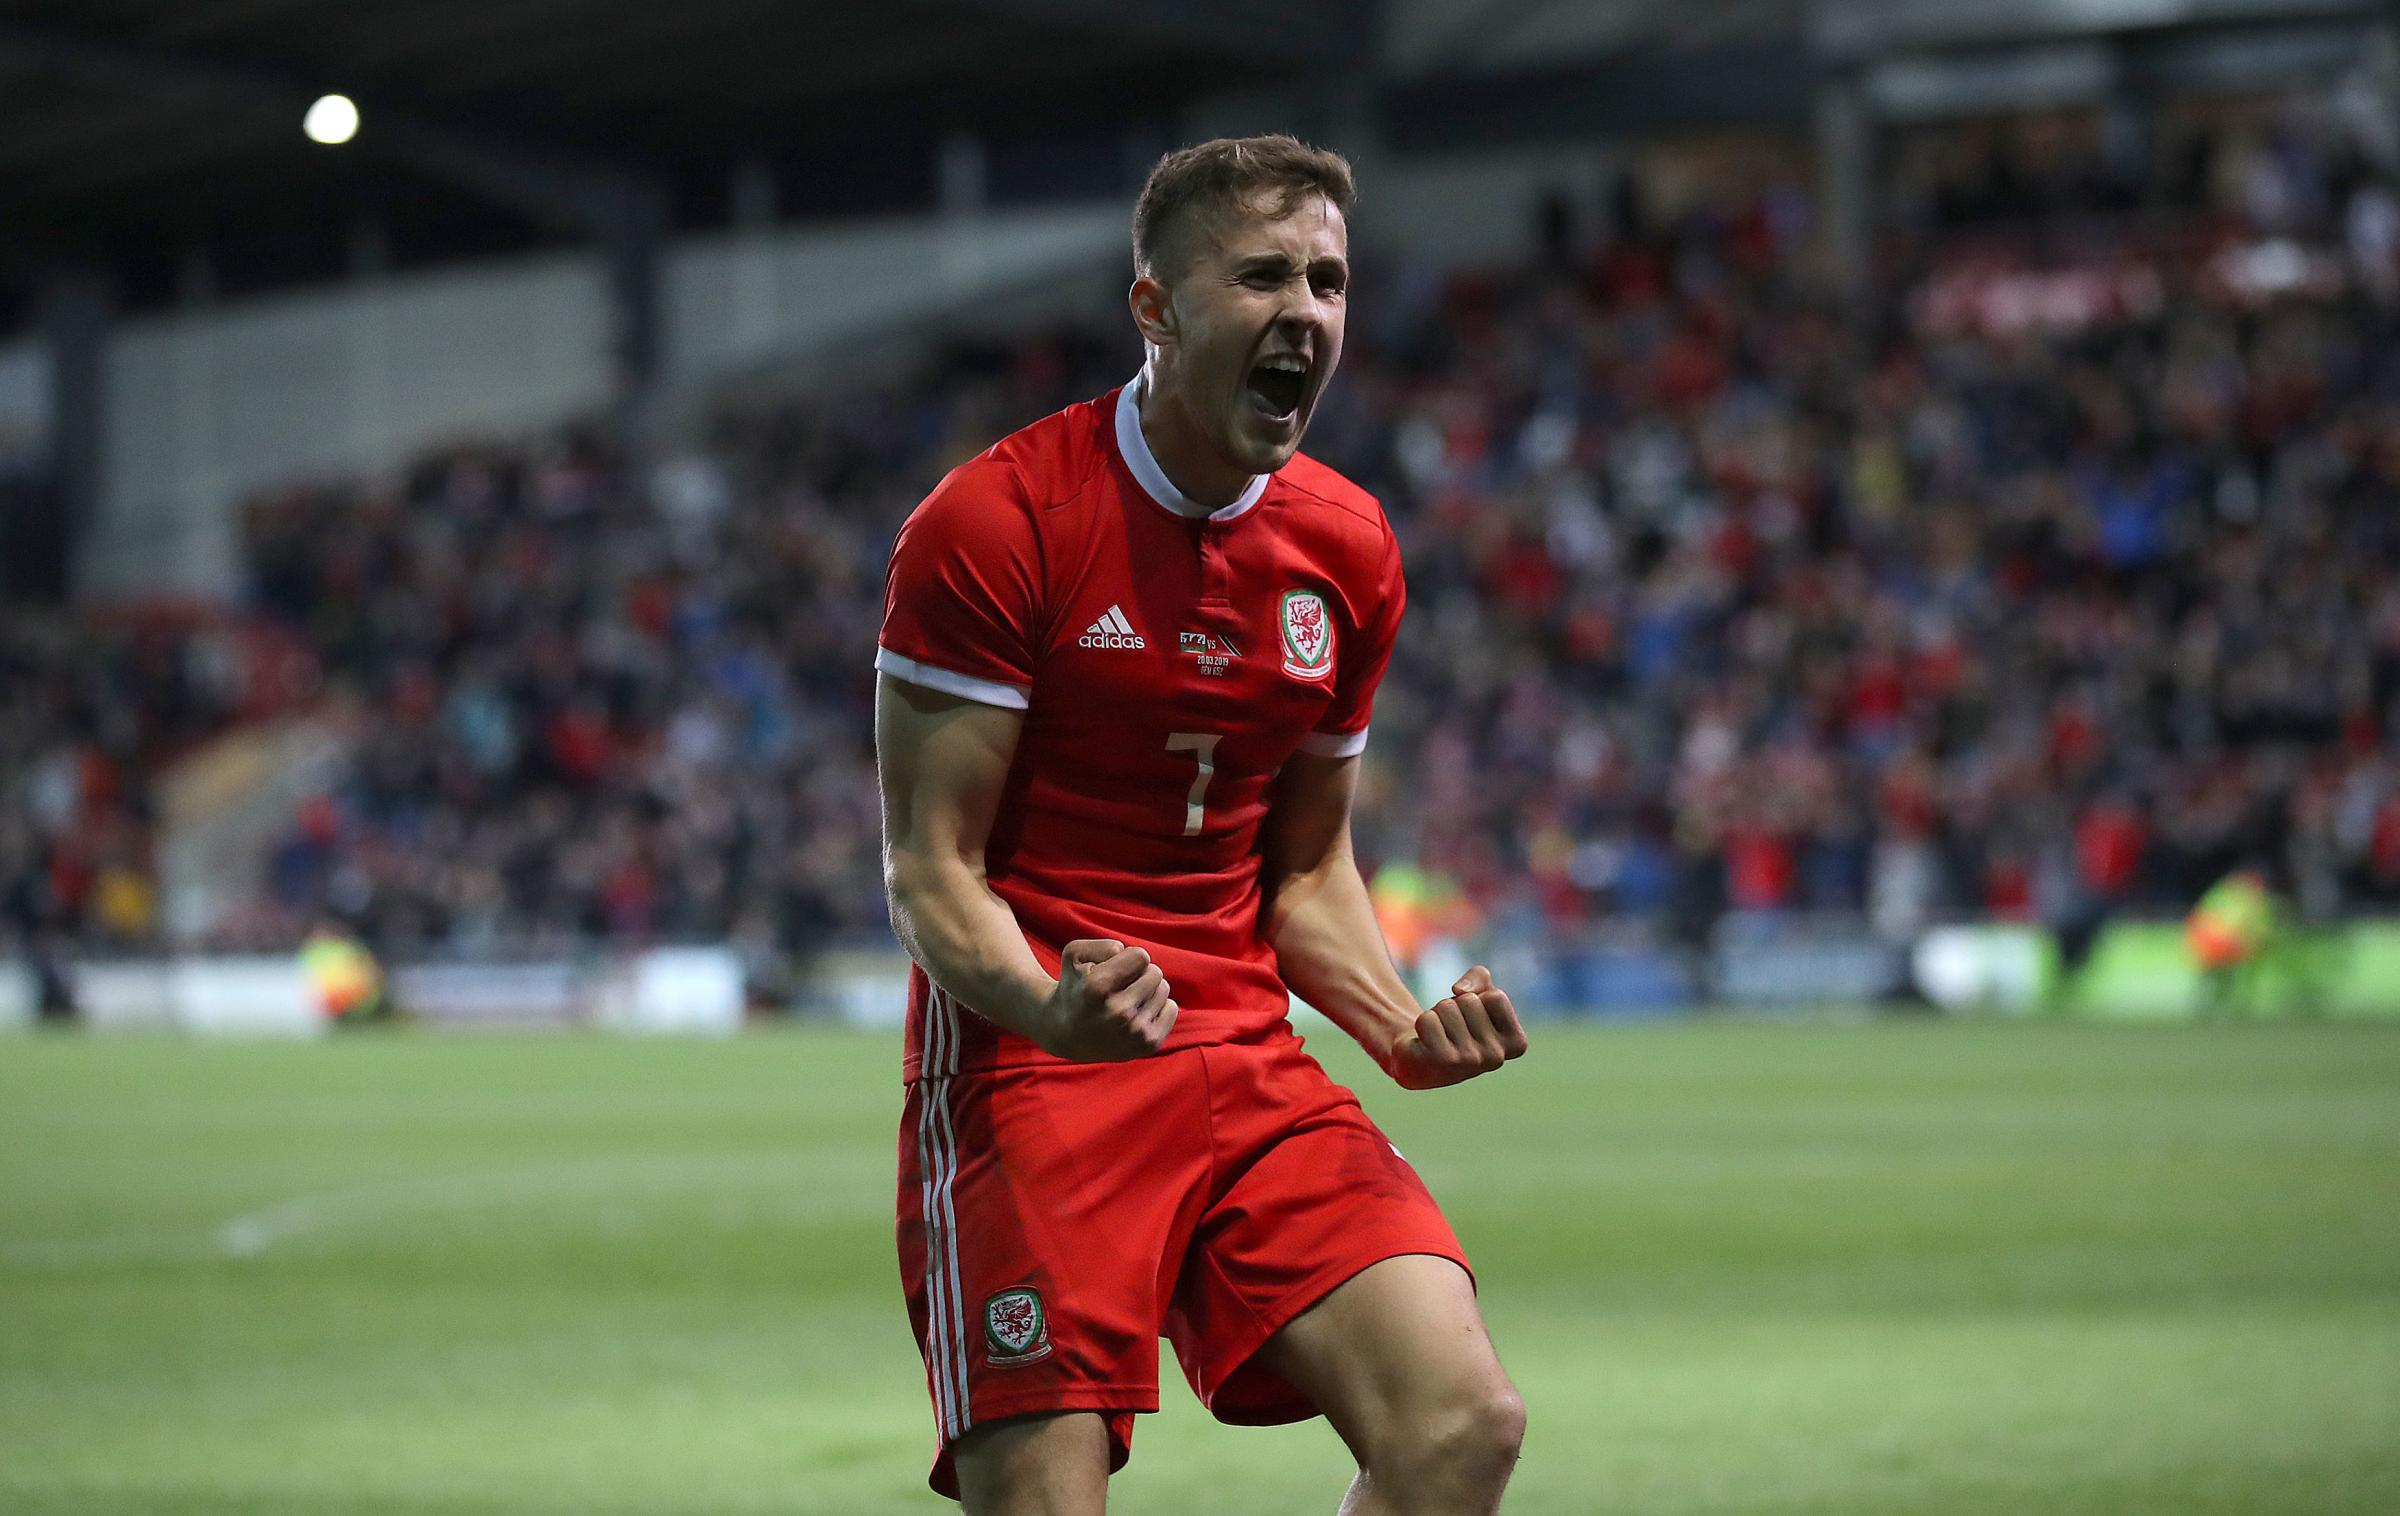 Wales' Will Vaulks celebrates Ben Woodburn (not pictured) scoring his side's first goal of the game during the International Friendly match at the Racecourse Ground, Wrexham. (Picture: Nick Potts/PA WIRE)